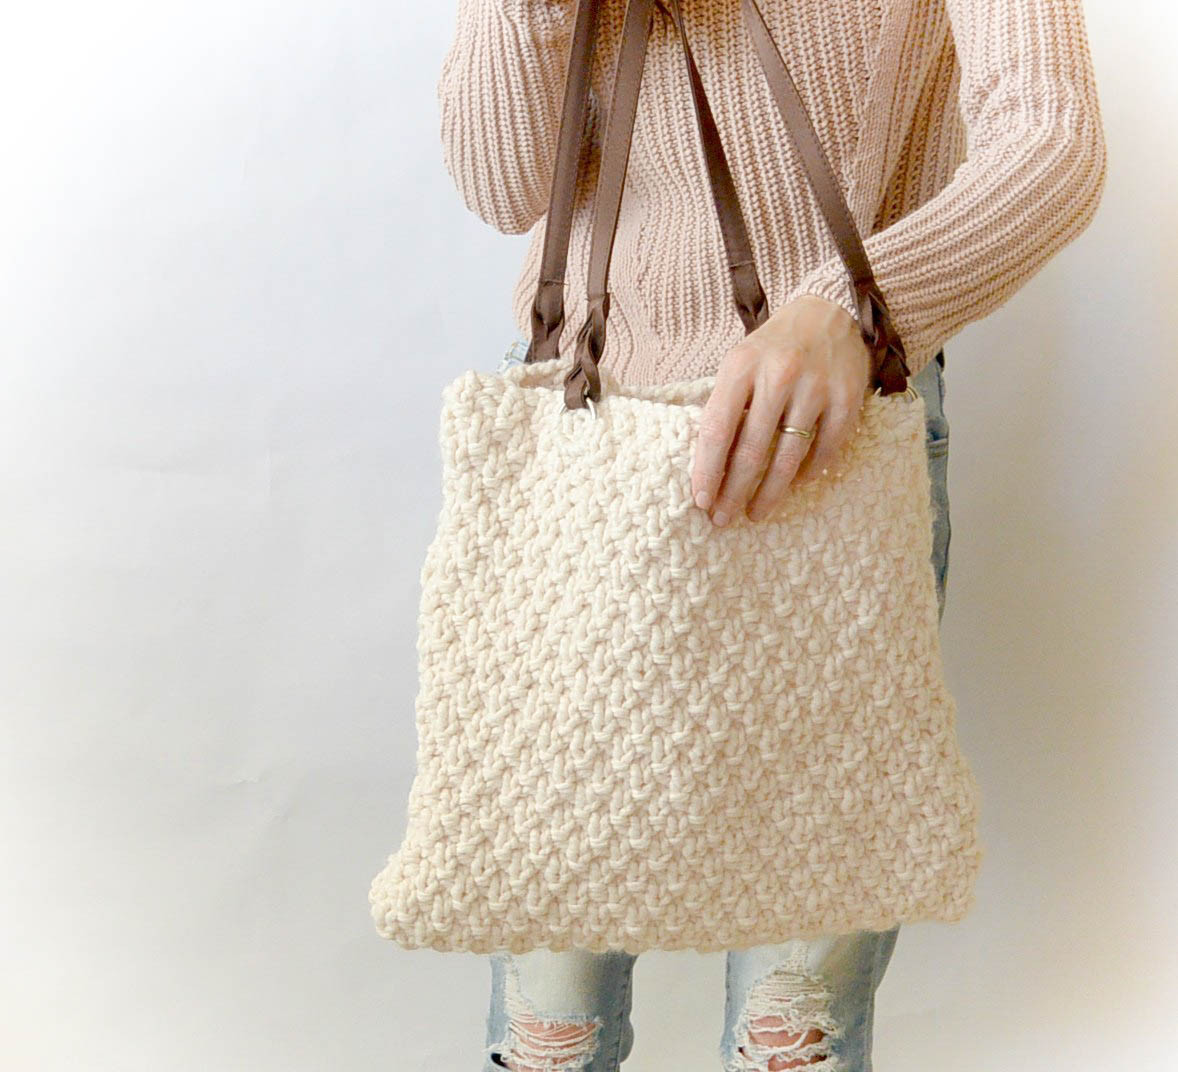 Awesome aspen Mountain Knit Bag Pattern – Mama In A Stitch Free Easy Knitting Patterns Of Gorgeous 46 Models Free Easy Knitting Patterns